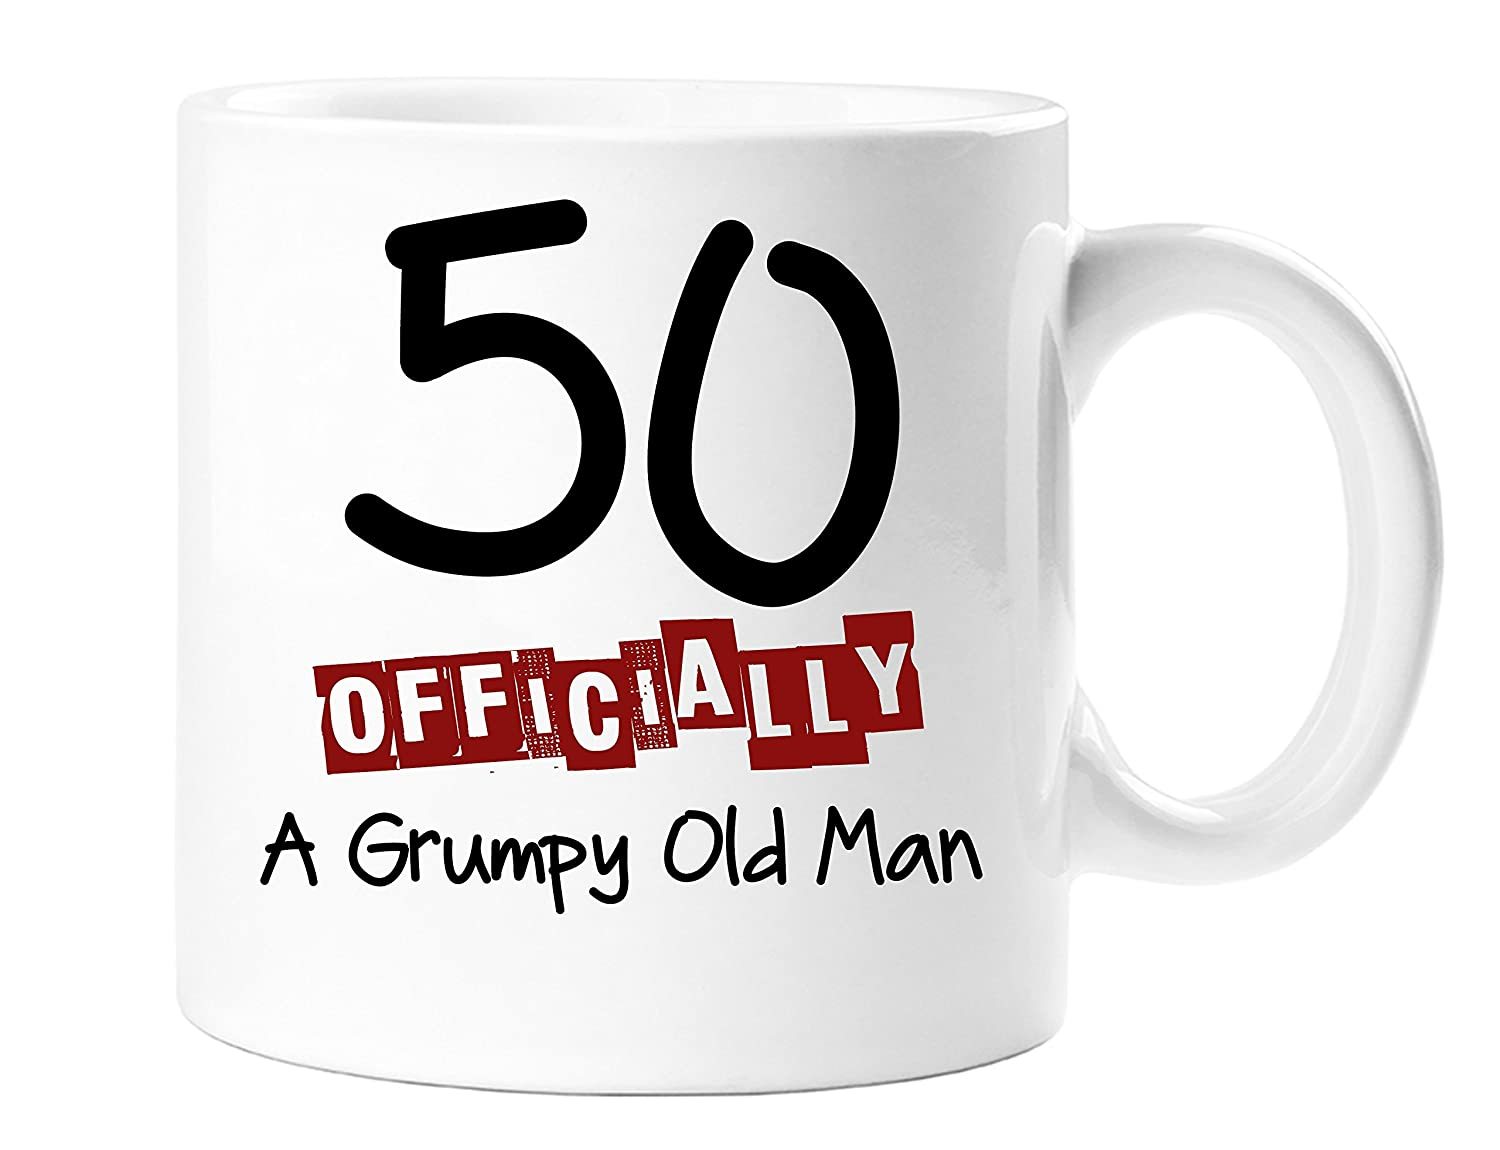 50 Officially A Grumpy Old Man - Funny Novelty 50th Birthday Gift Mug Top Sale